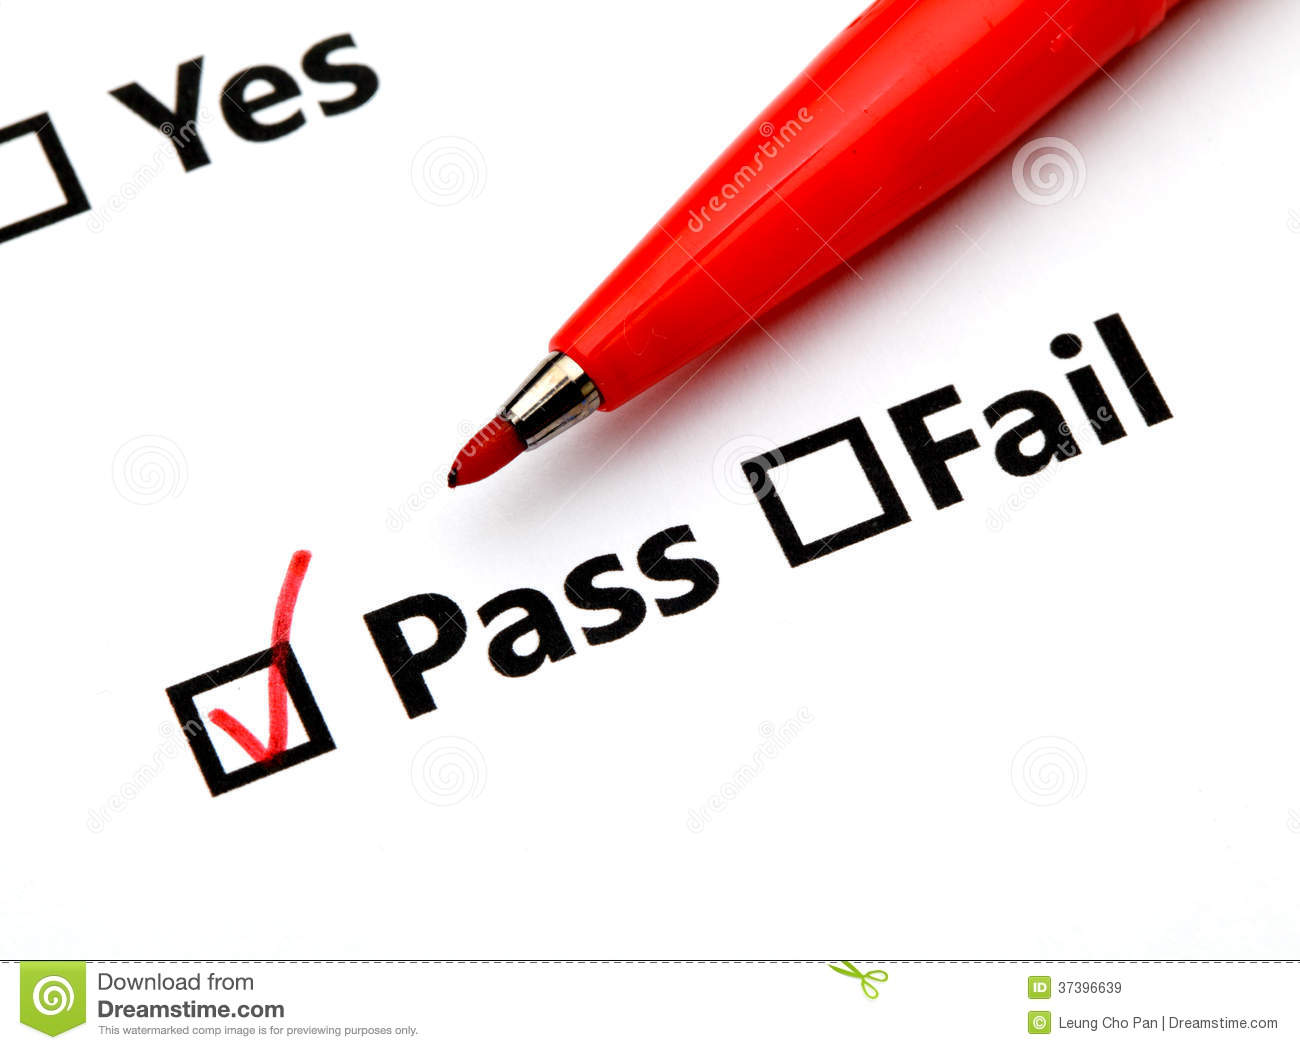 examining a business failure dhl essay Failure at tyco examining a business failure analyzing the failure at tyco international this essay is to analyze the situation of tyco international and how it failed.